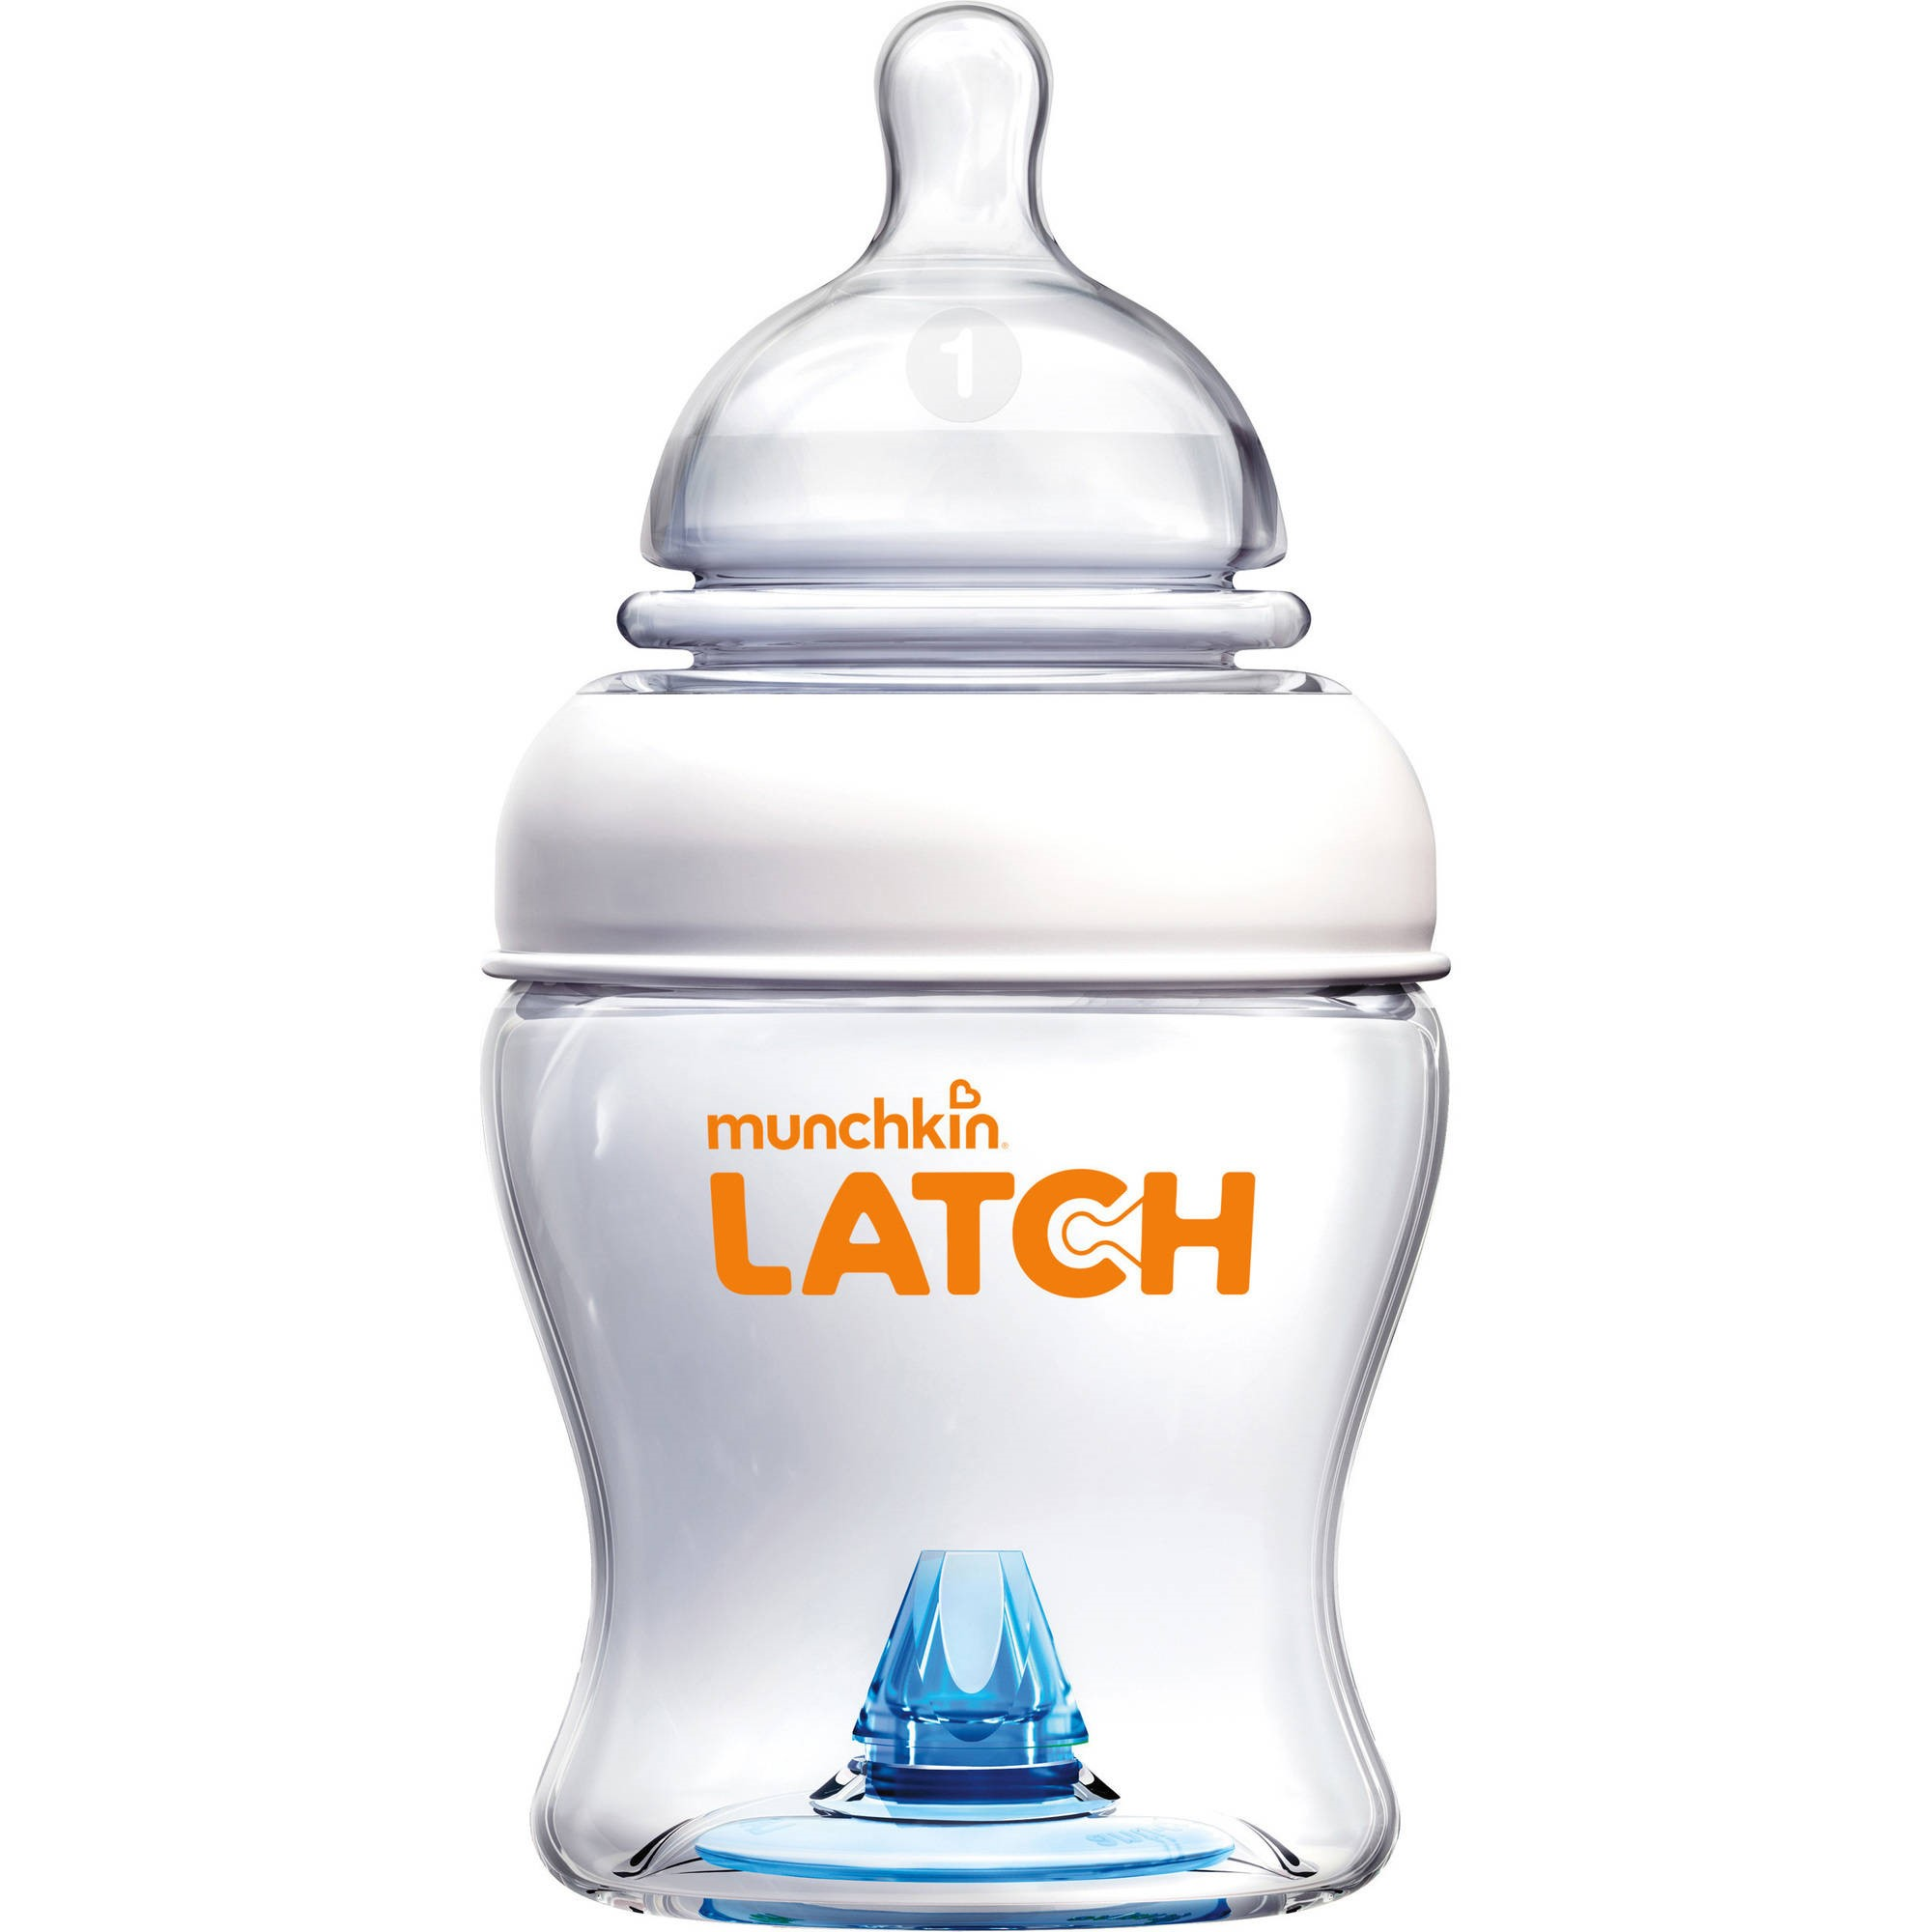 Munchkin Latch 4 oz Bottle BPA Free